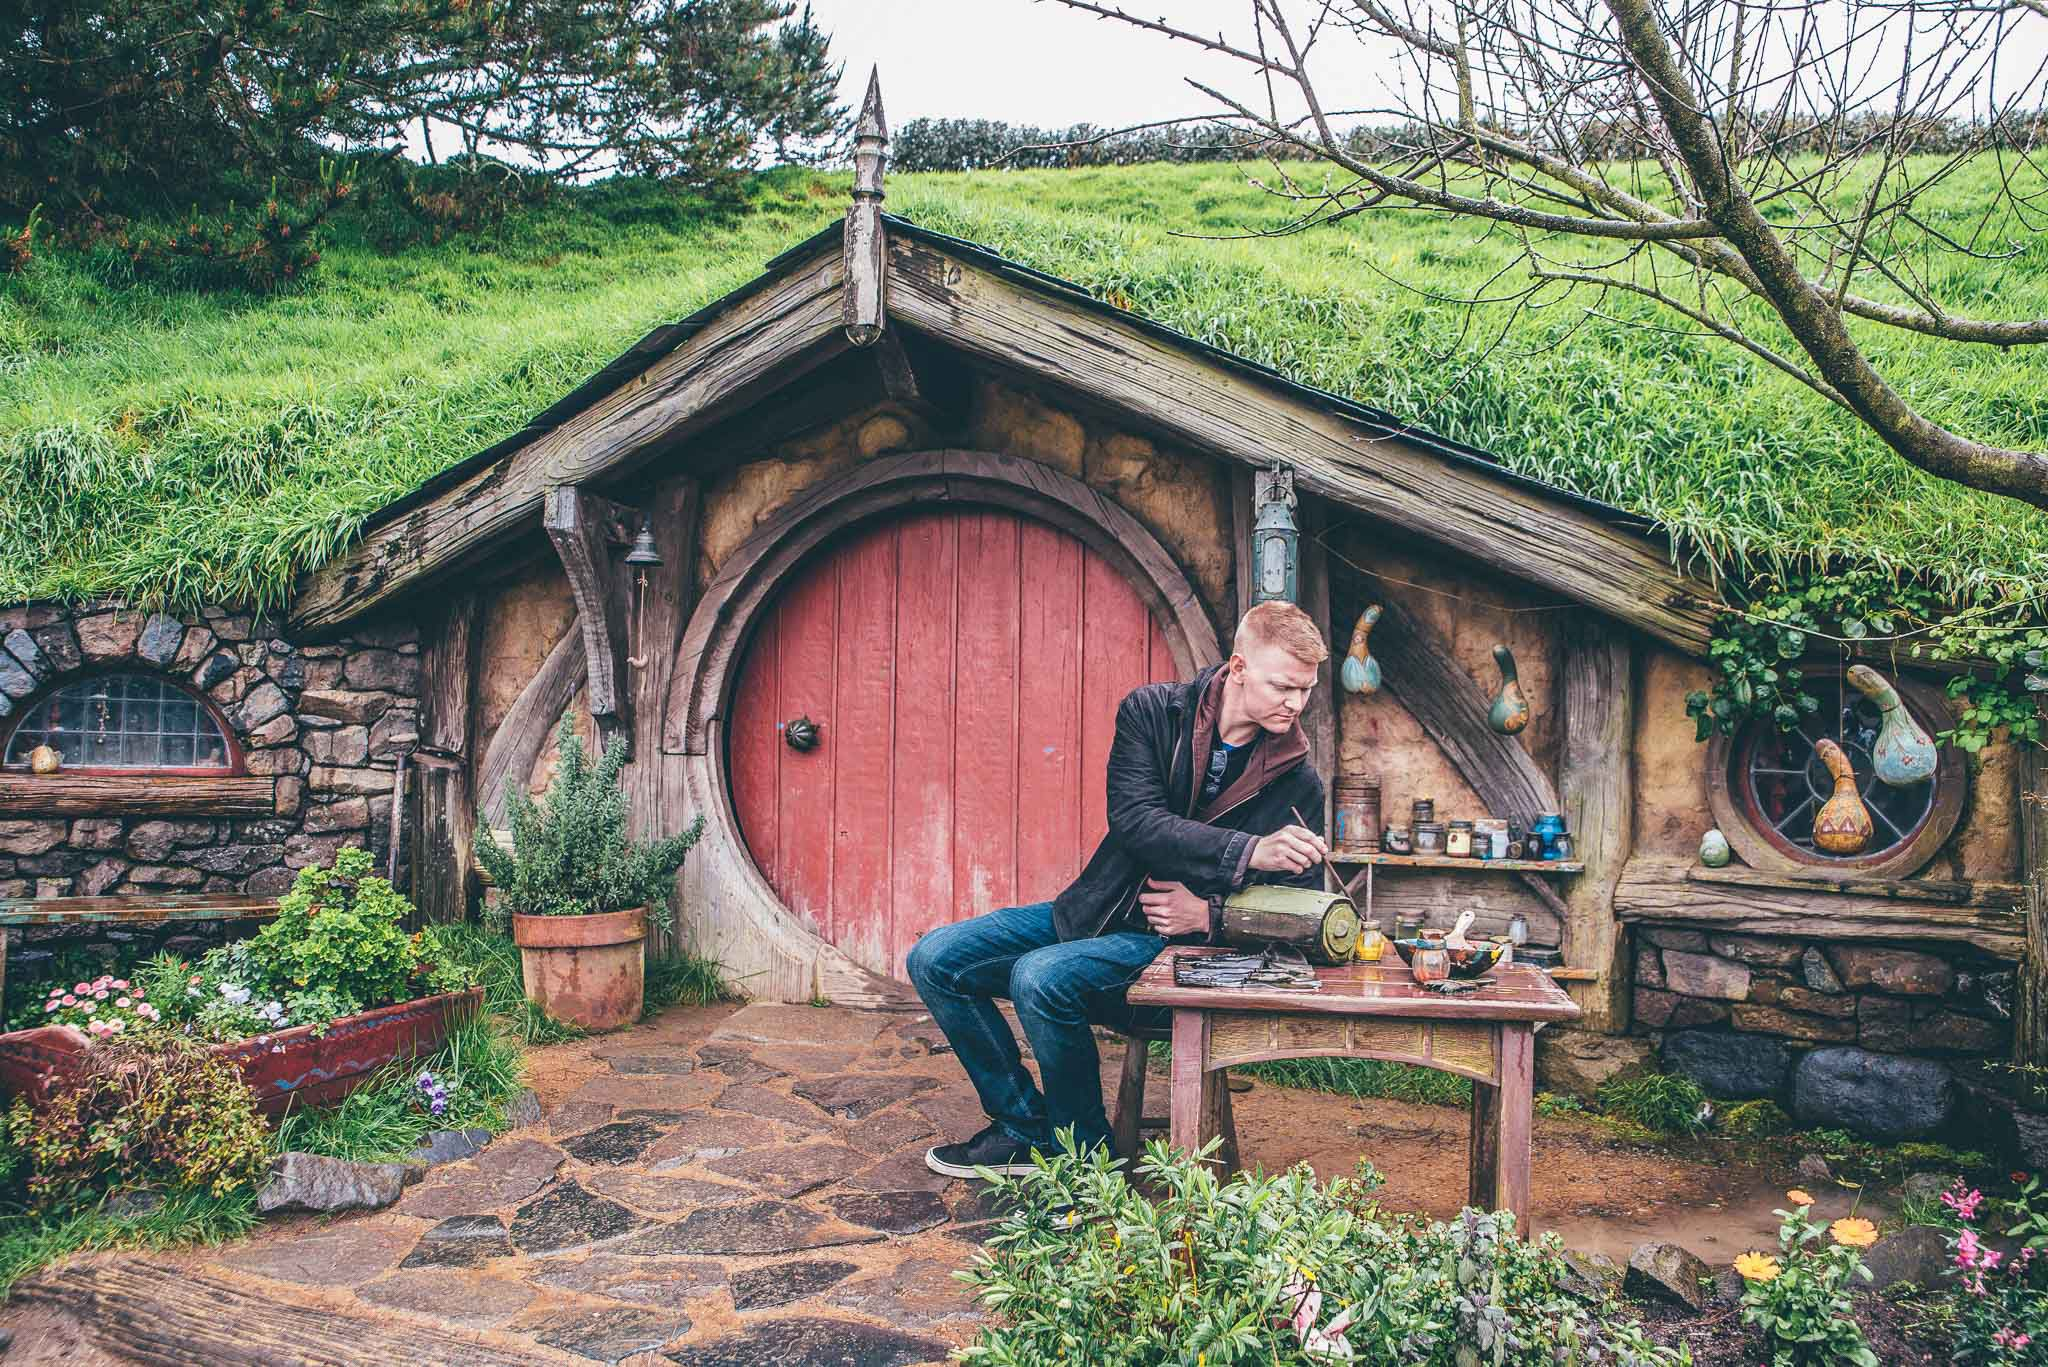 Hobbiton Day Trip from Auckland - Best Airbnbs in Auckland, NZ